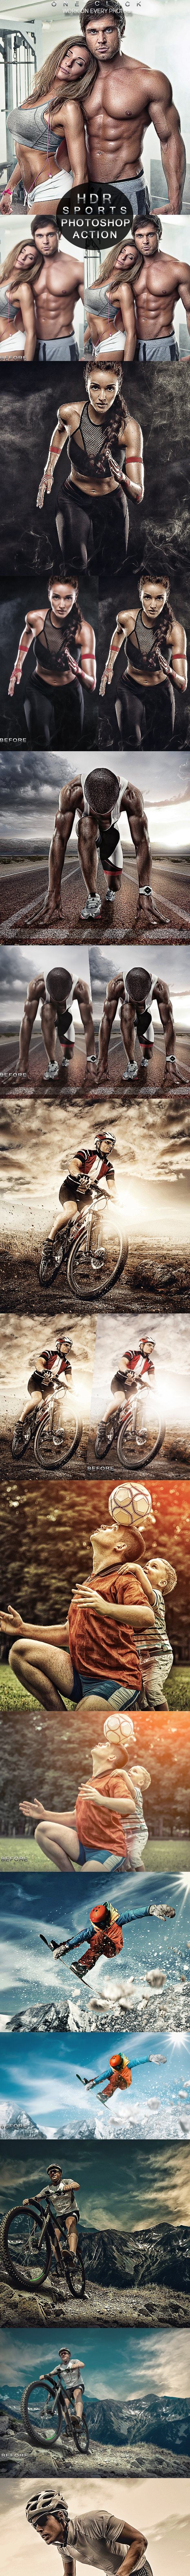 PRO Sports Photoshop Action - Actions Photoshop